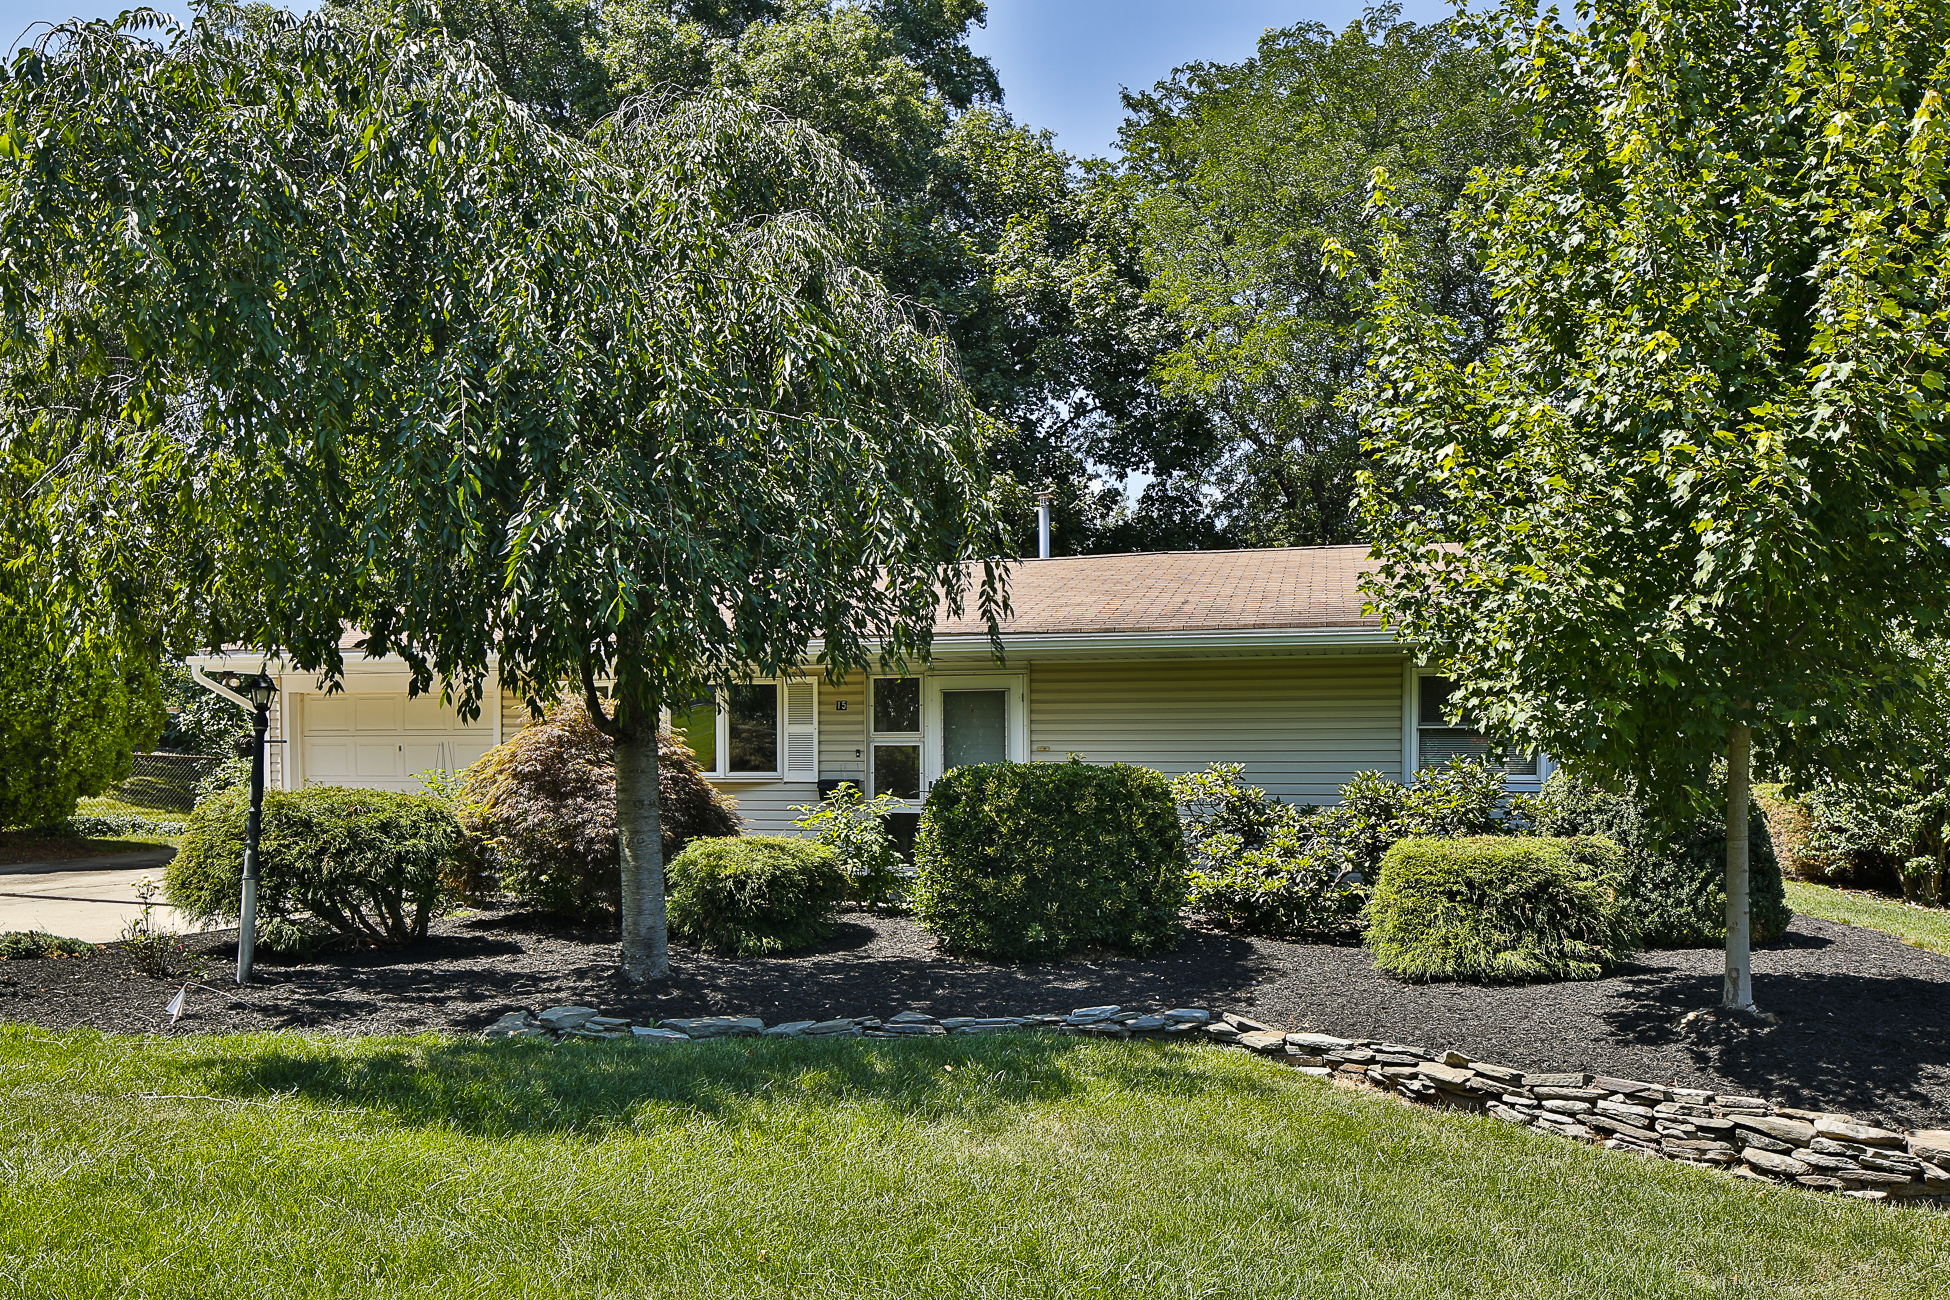 Property For Sale at Charming Ranch Ready for the Next Generation - South Brunswick Township